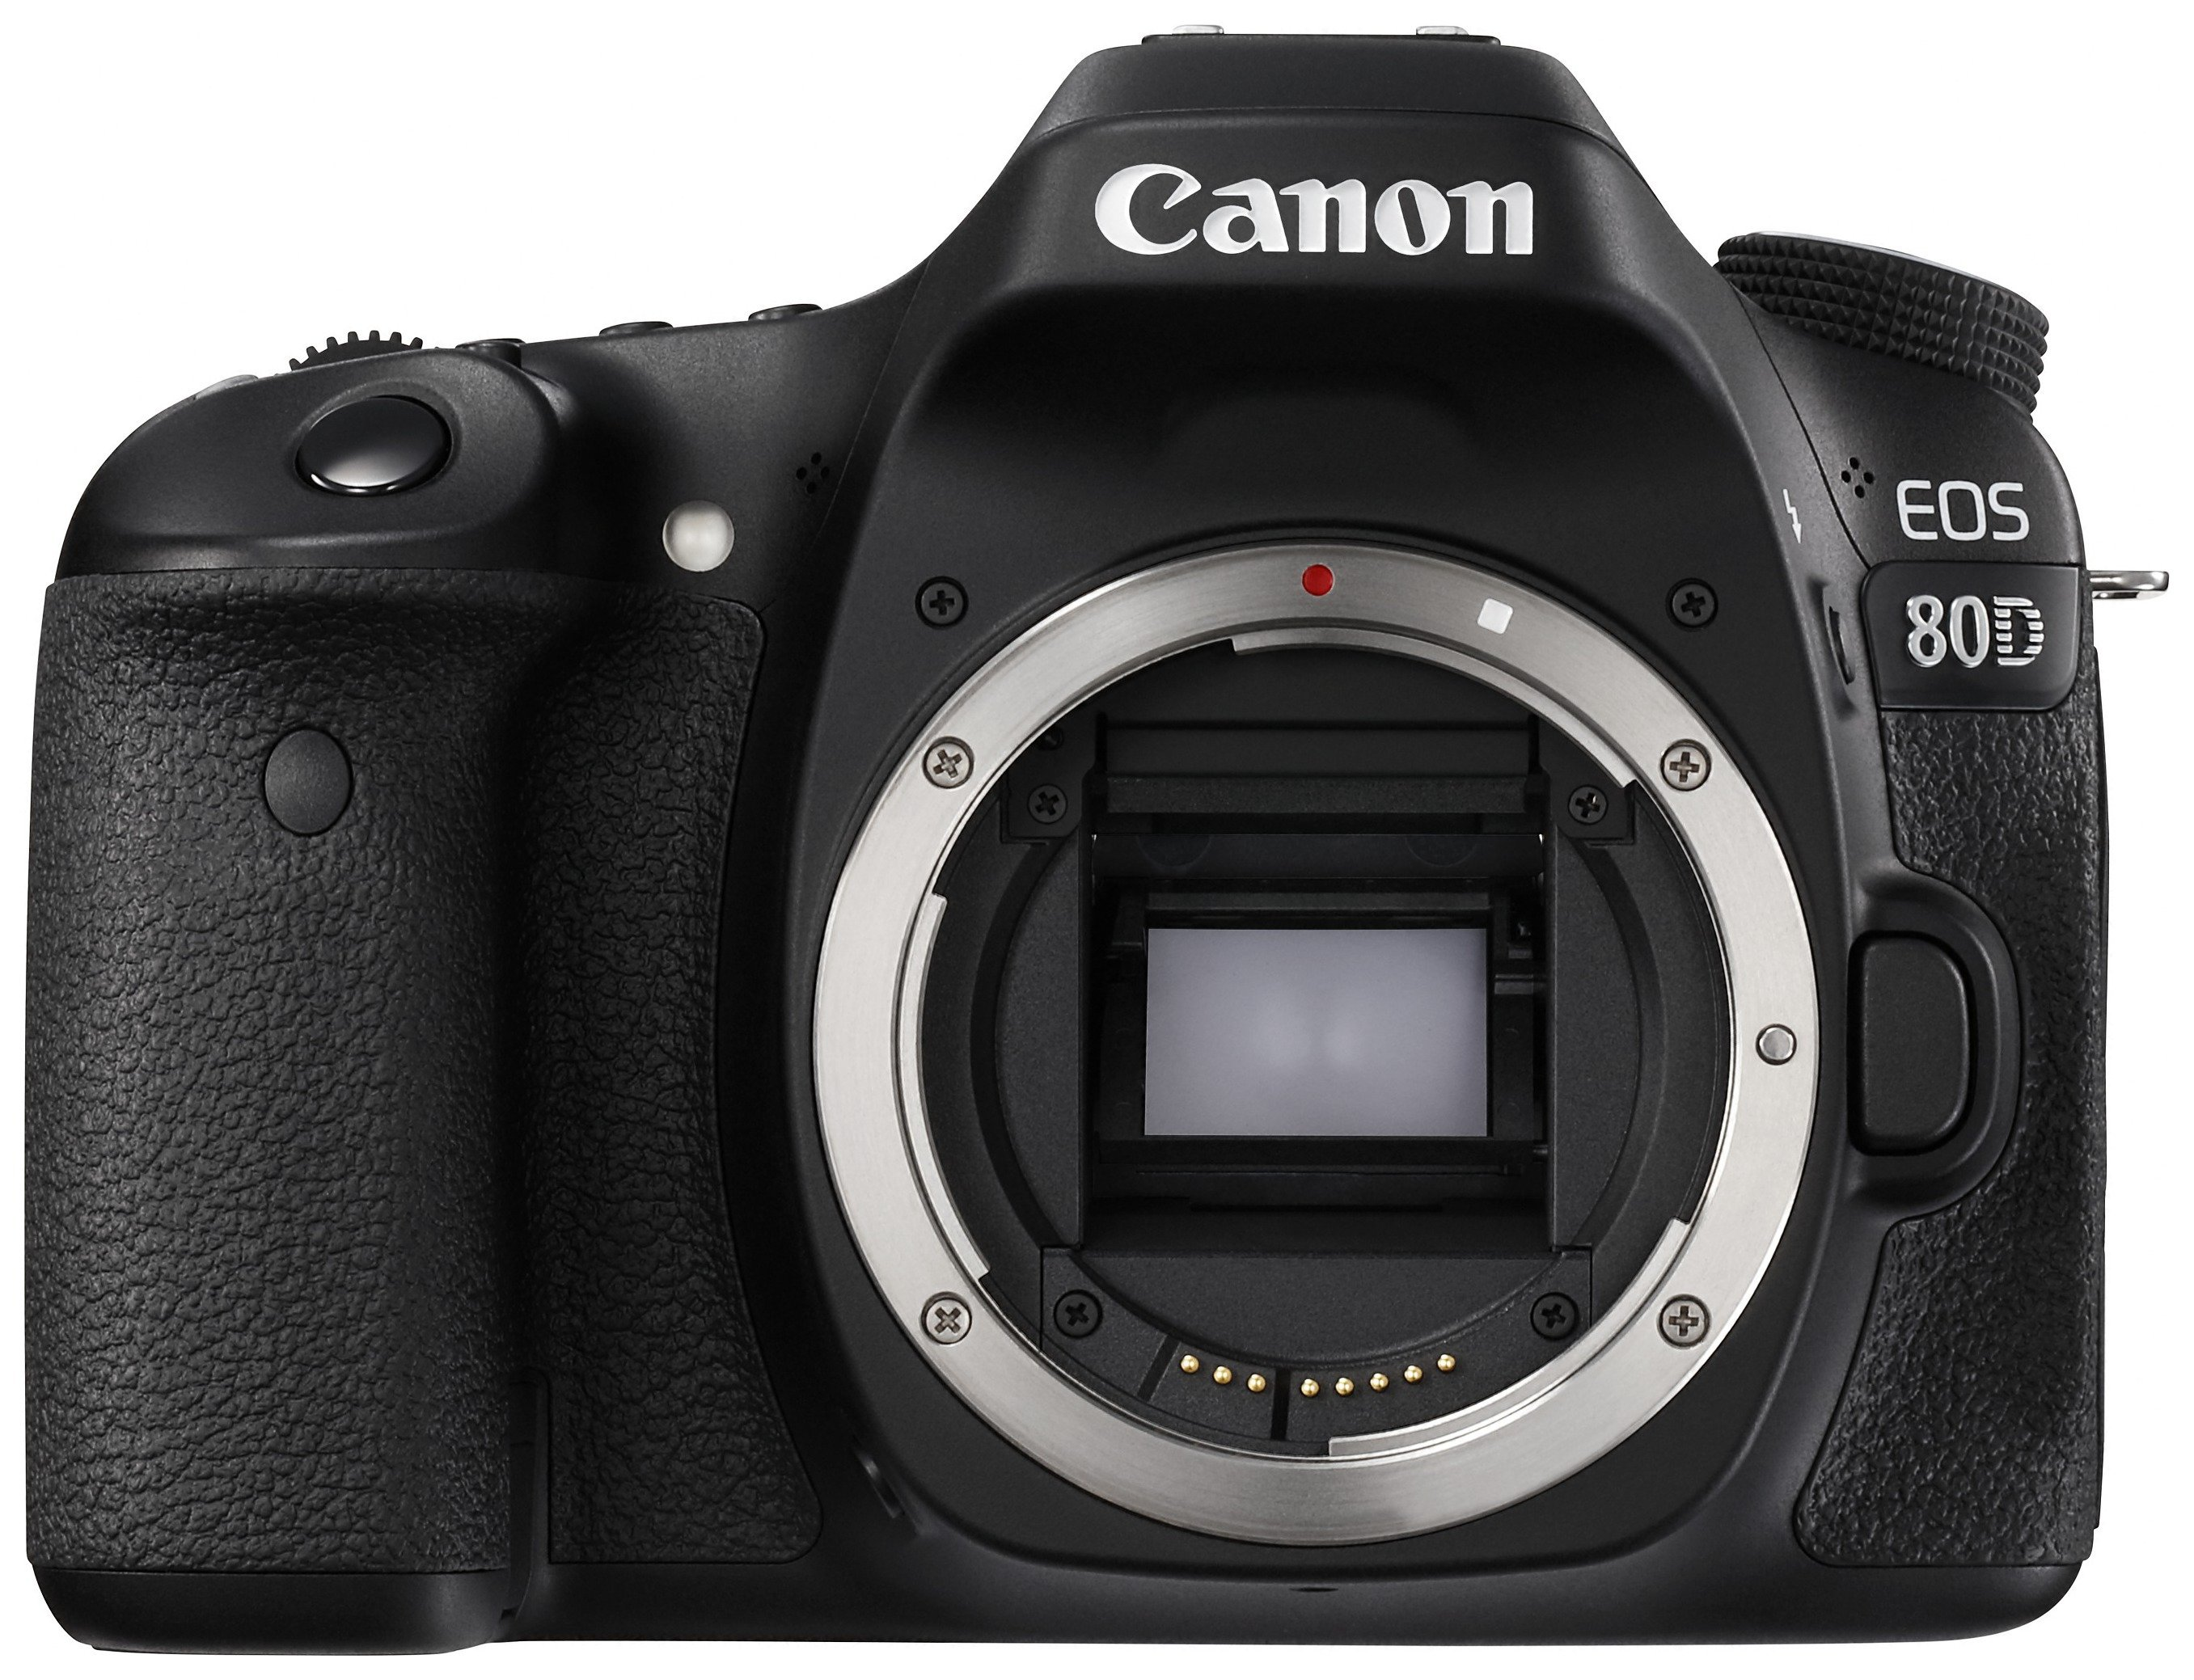 Canon - Digital SLR Camera - EOS 80D Body Only.